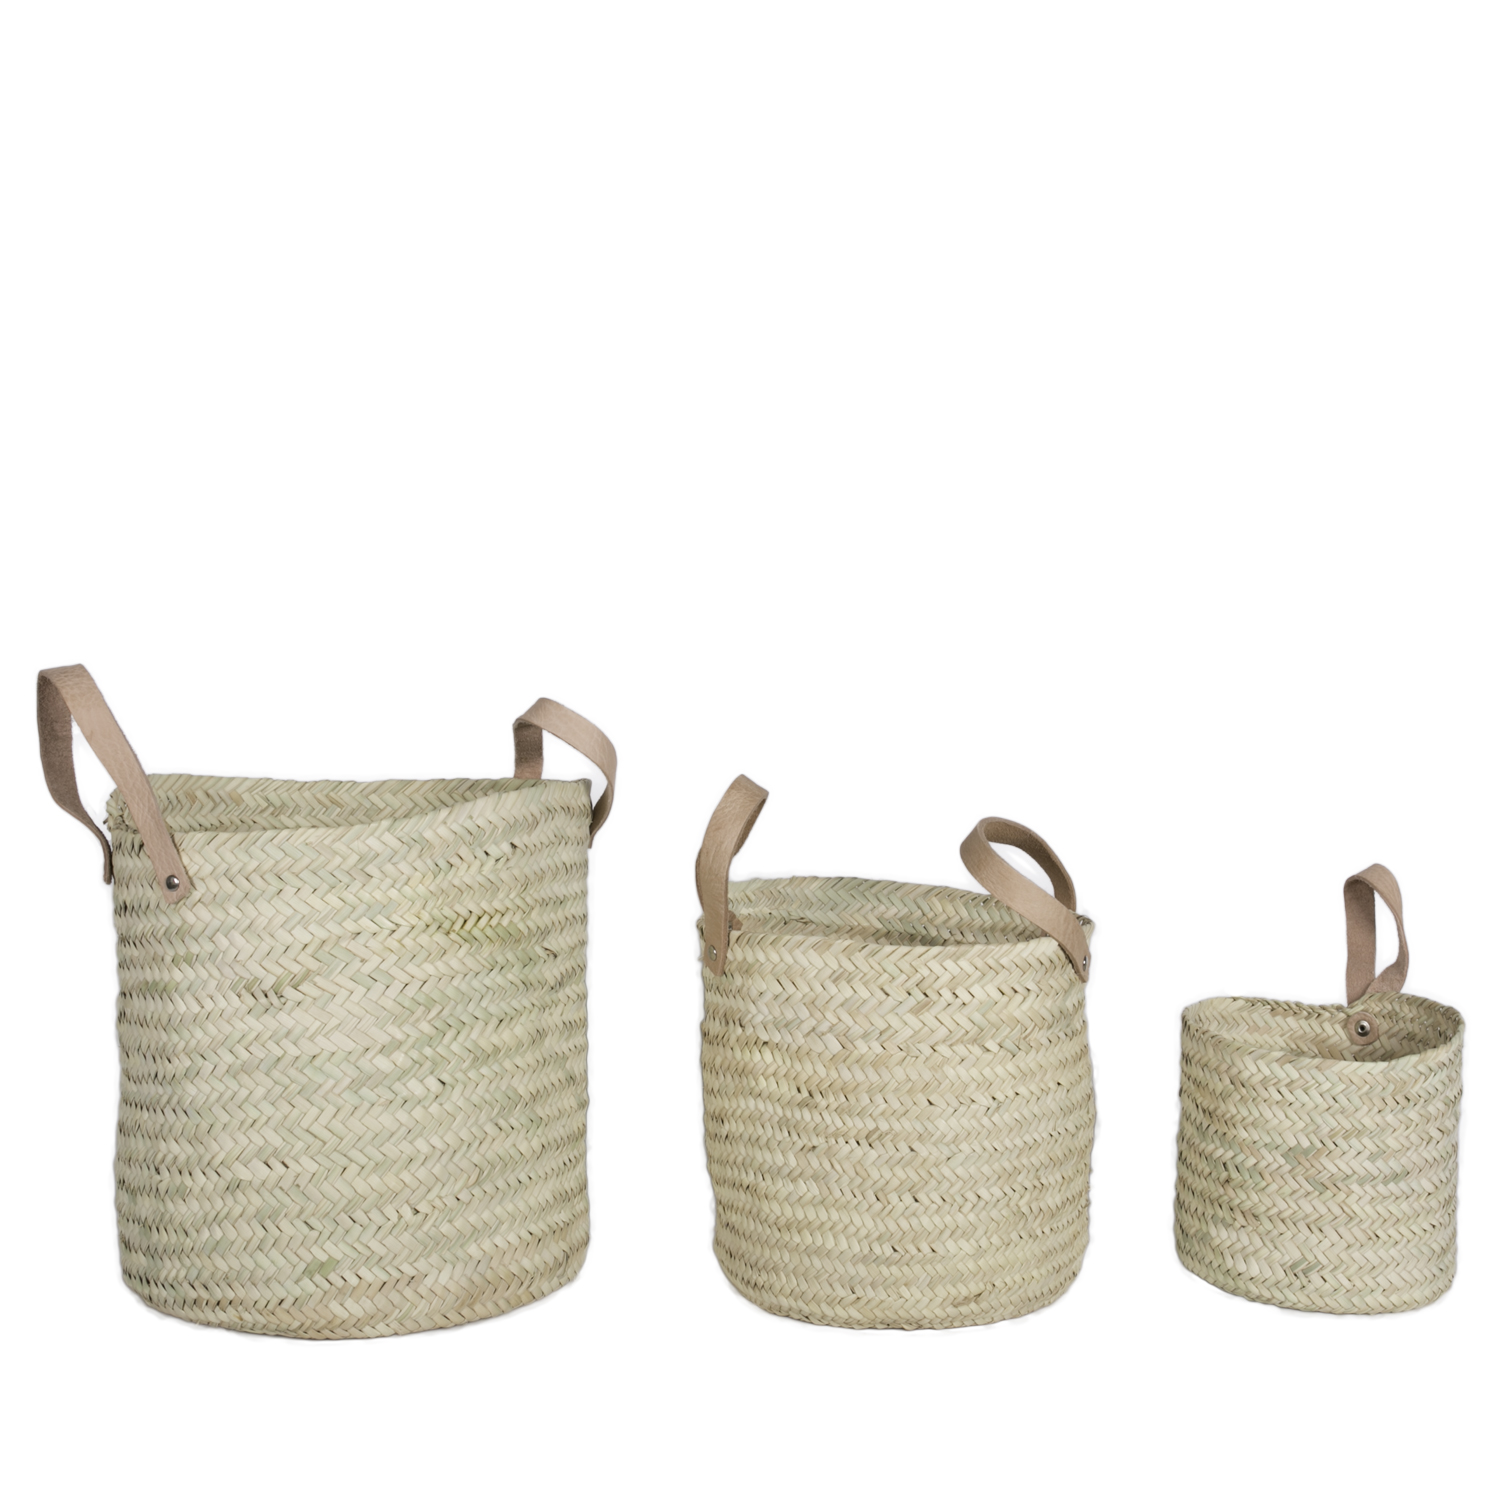 Marrakech set baskets with leather COMING SOON